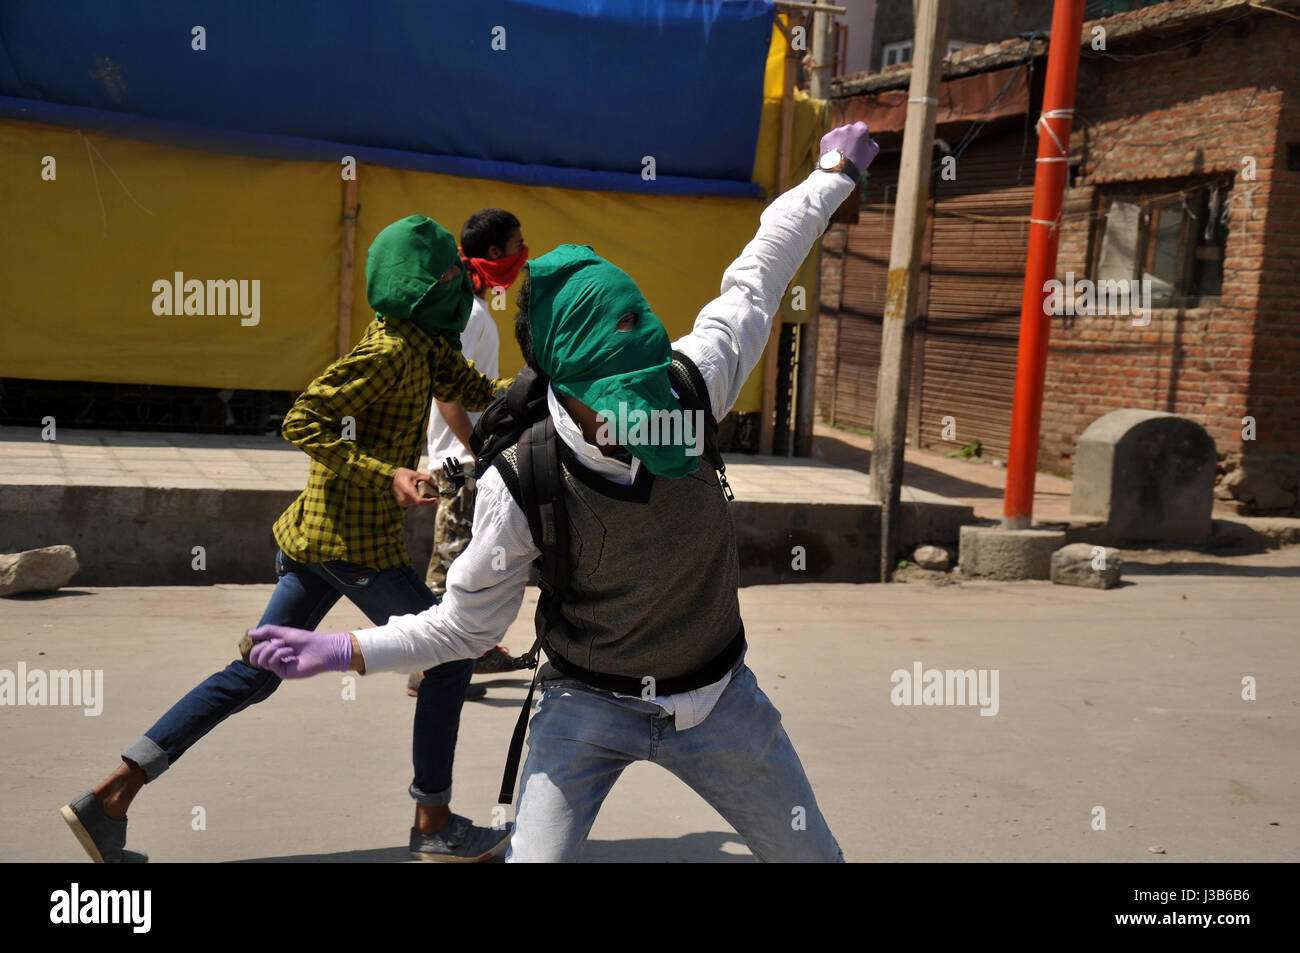 Srinagar, Kashmir. 5th May, 2017. Kashmiri Muslim protestors pelted stones towards Govt. forces after Friday prayers - Stock Image